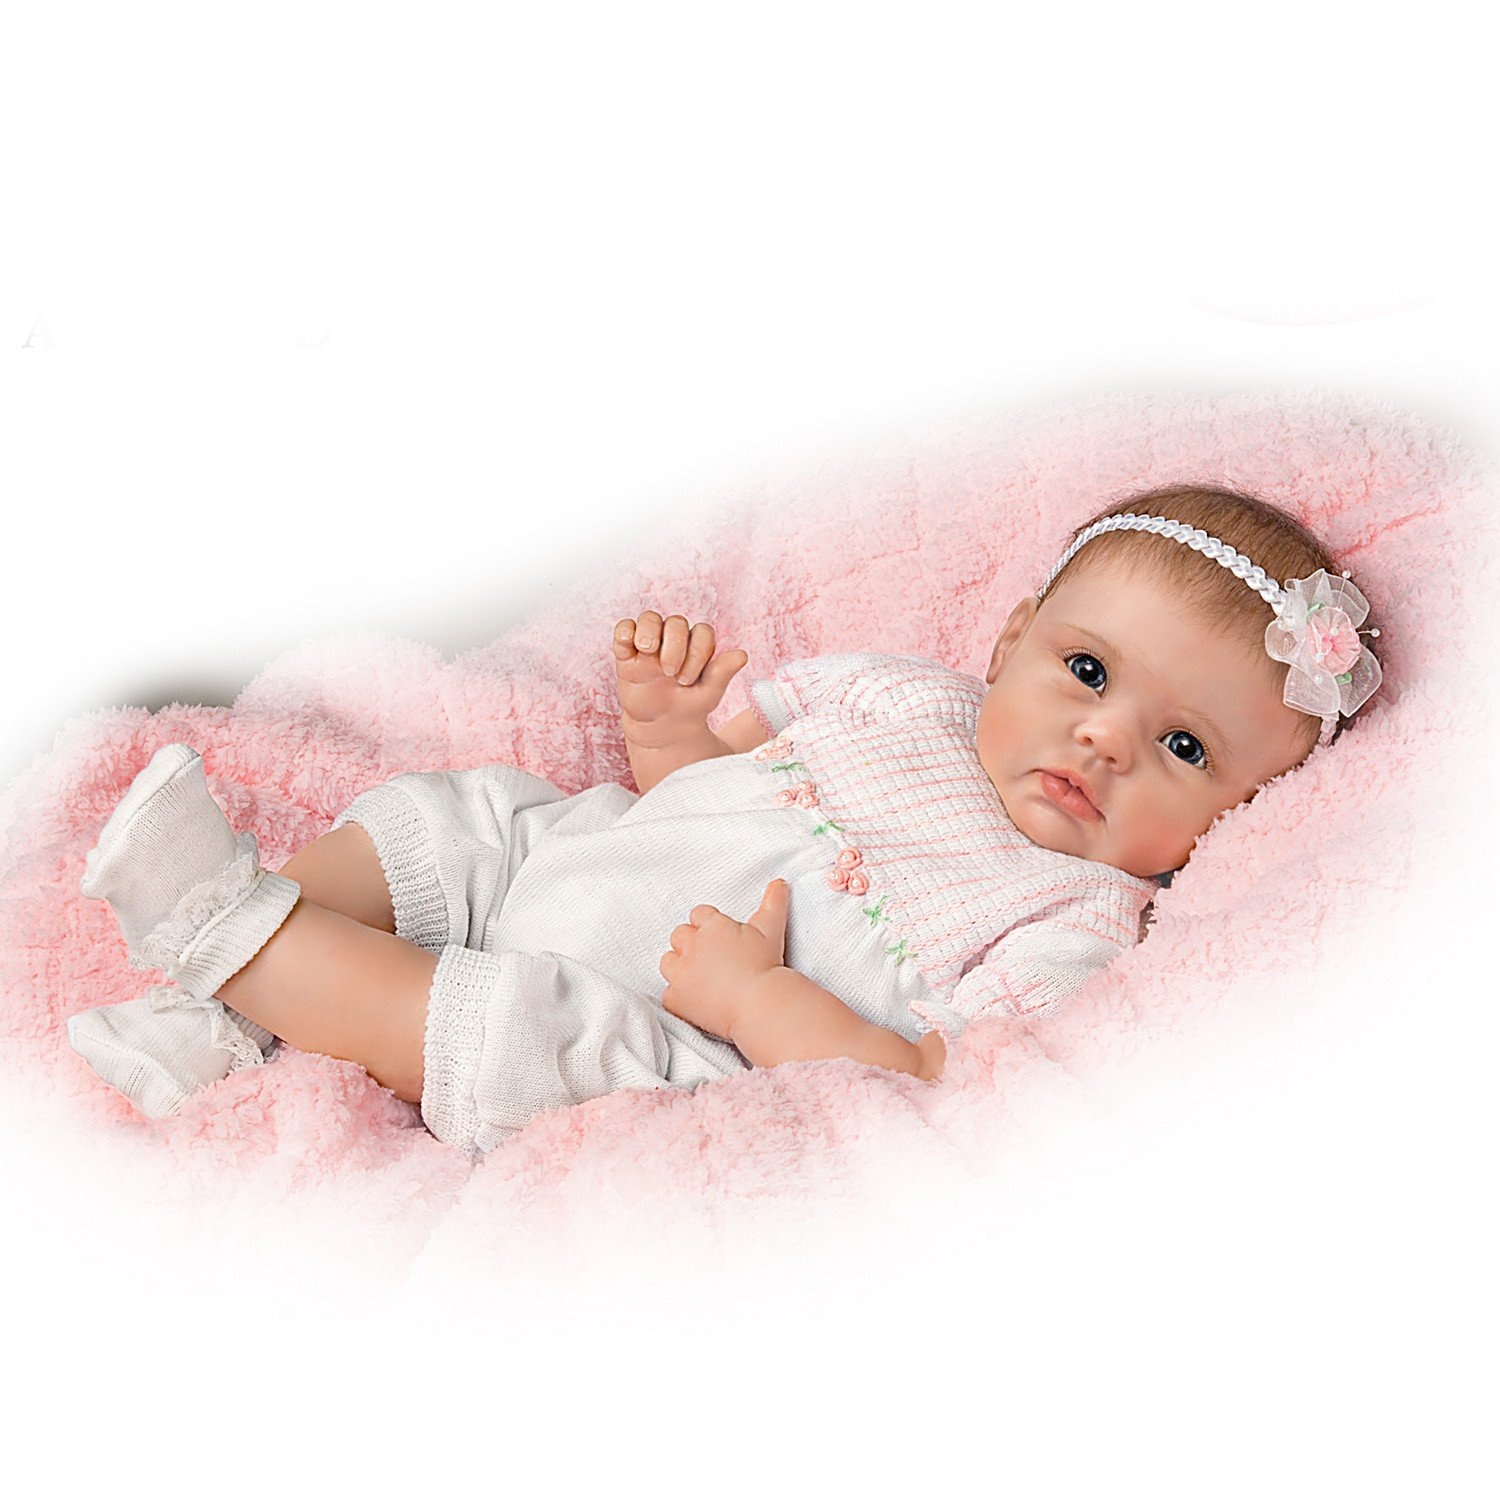 The Ashton - Drake Galleries Olivia's Gentle Touch Curls Her Hand Around Your Finger So Truly Real Lifelike, Interactive & Realistic Award-Winning Newborn Baby Doll 22-inches by The Ashton - Drake Galleries